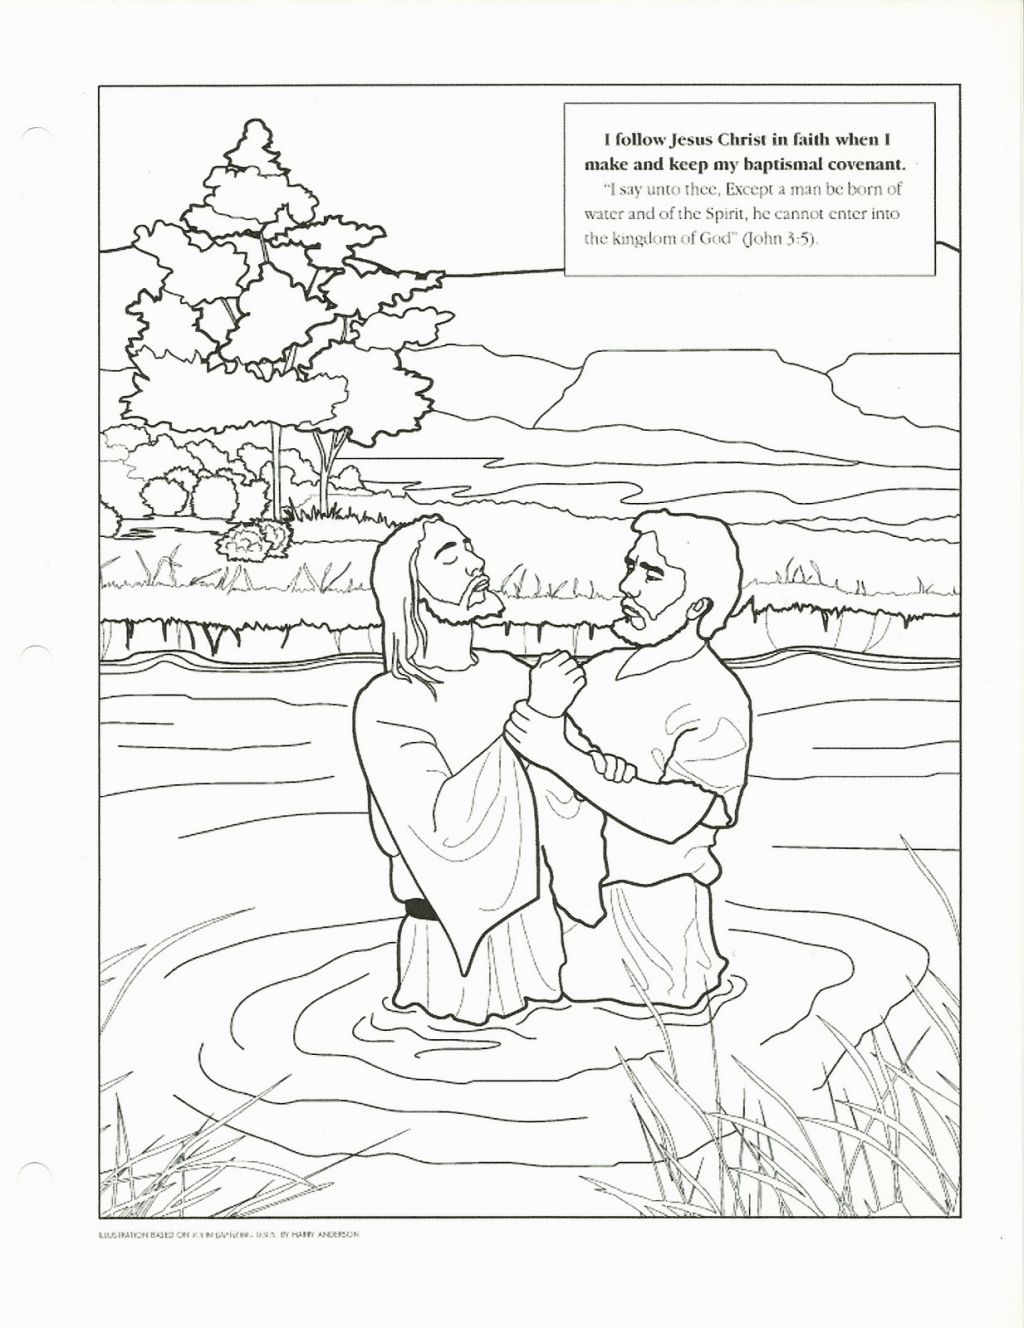 Jesus Baptism Coloring Page Jesus Coloring Pages Lds Coloring Pages Bible Coloring Pages